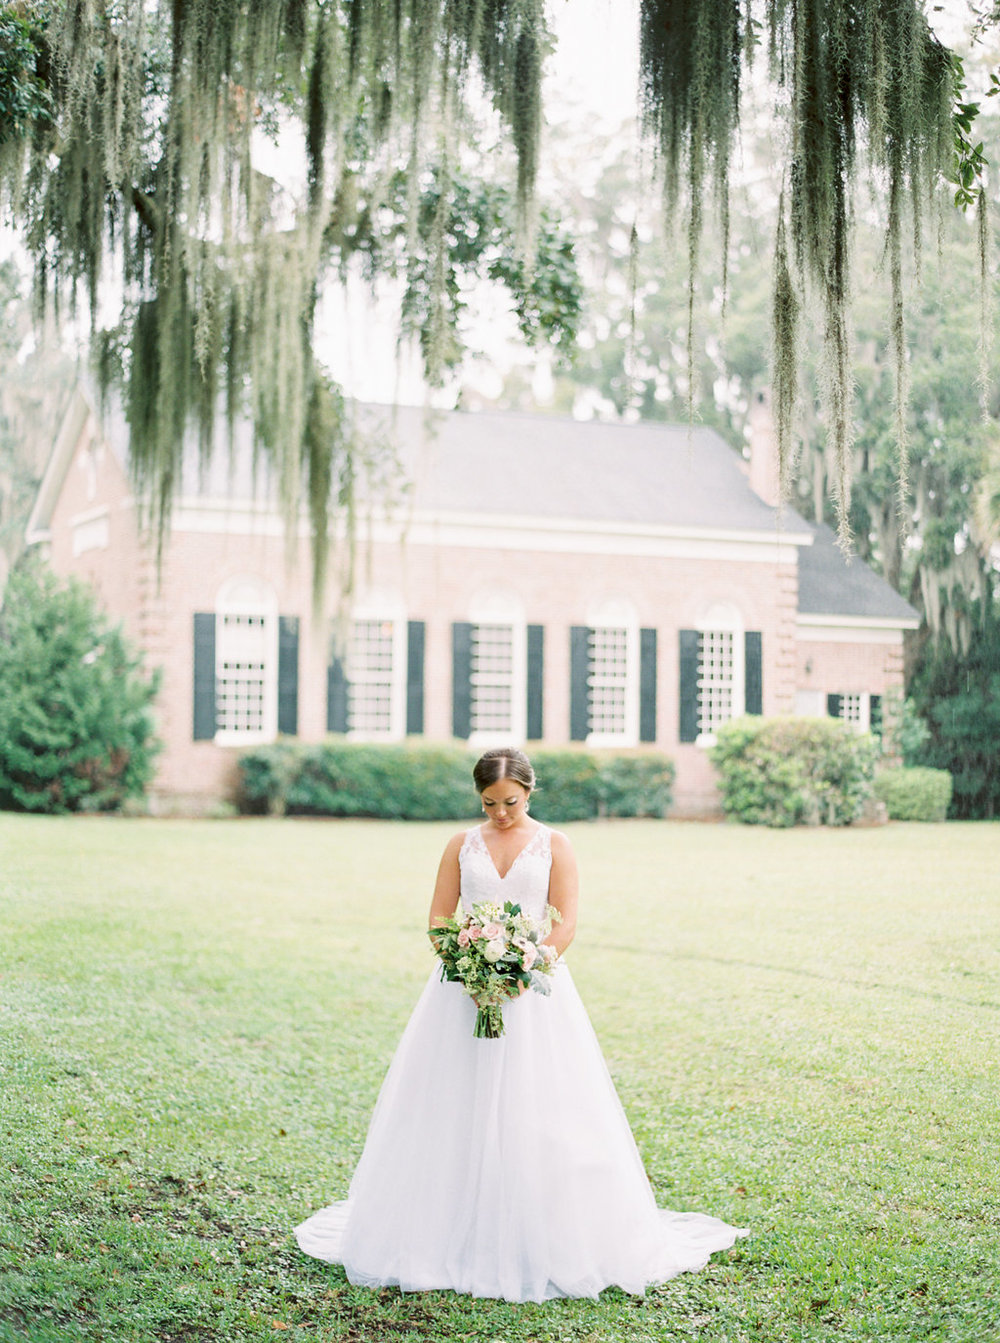 the-happy-bloom-photography-ivory-and-beau-wedding-planning-ivory-and-beau-bridal-boutique-whitfield-chapel-wedding-10-downing-wedding-savannah-wedding-historic-savannah-wedding-savannah-wedding-planner-savannah-weddings-a-to-zinnias-17.jpg